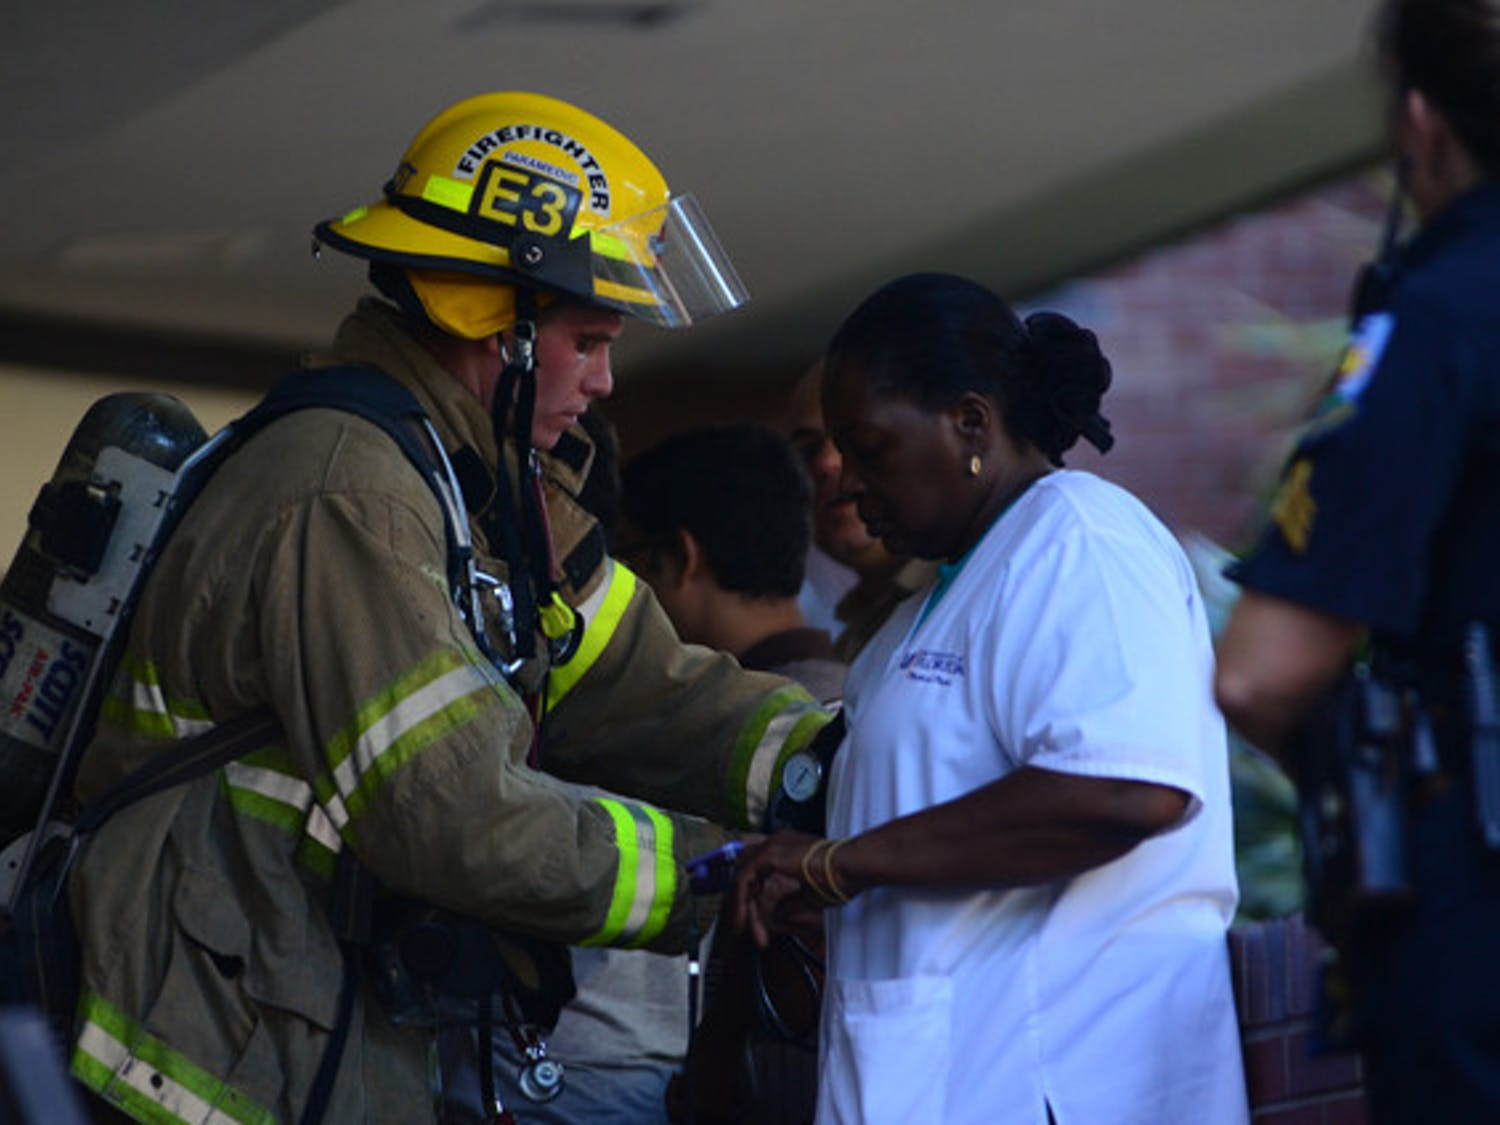 Gainesville firefighter/paramedic Matt Pfost checks the blood pressure of UF employee Stephanie Bennett-White in Turlington after the building was evacuated because of a chemical spill on Monday afternoon.